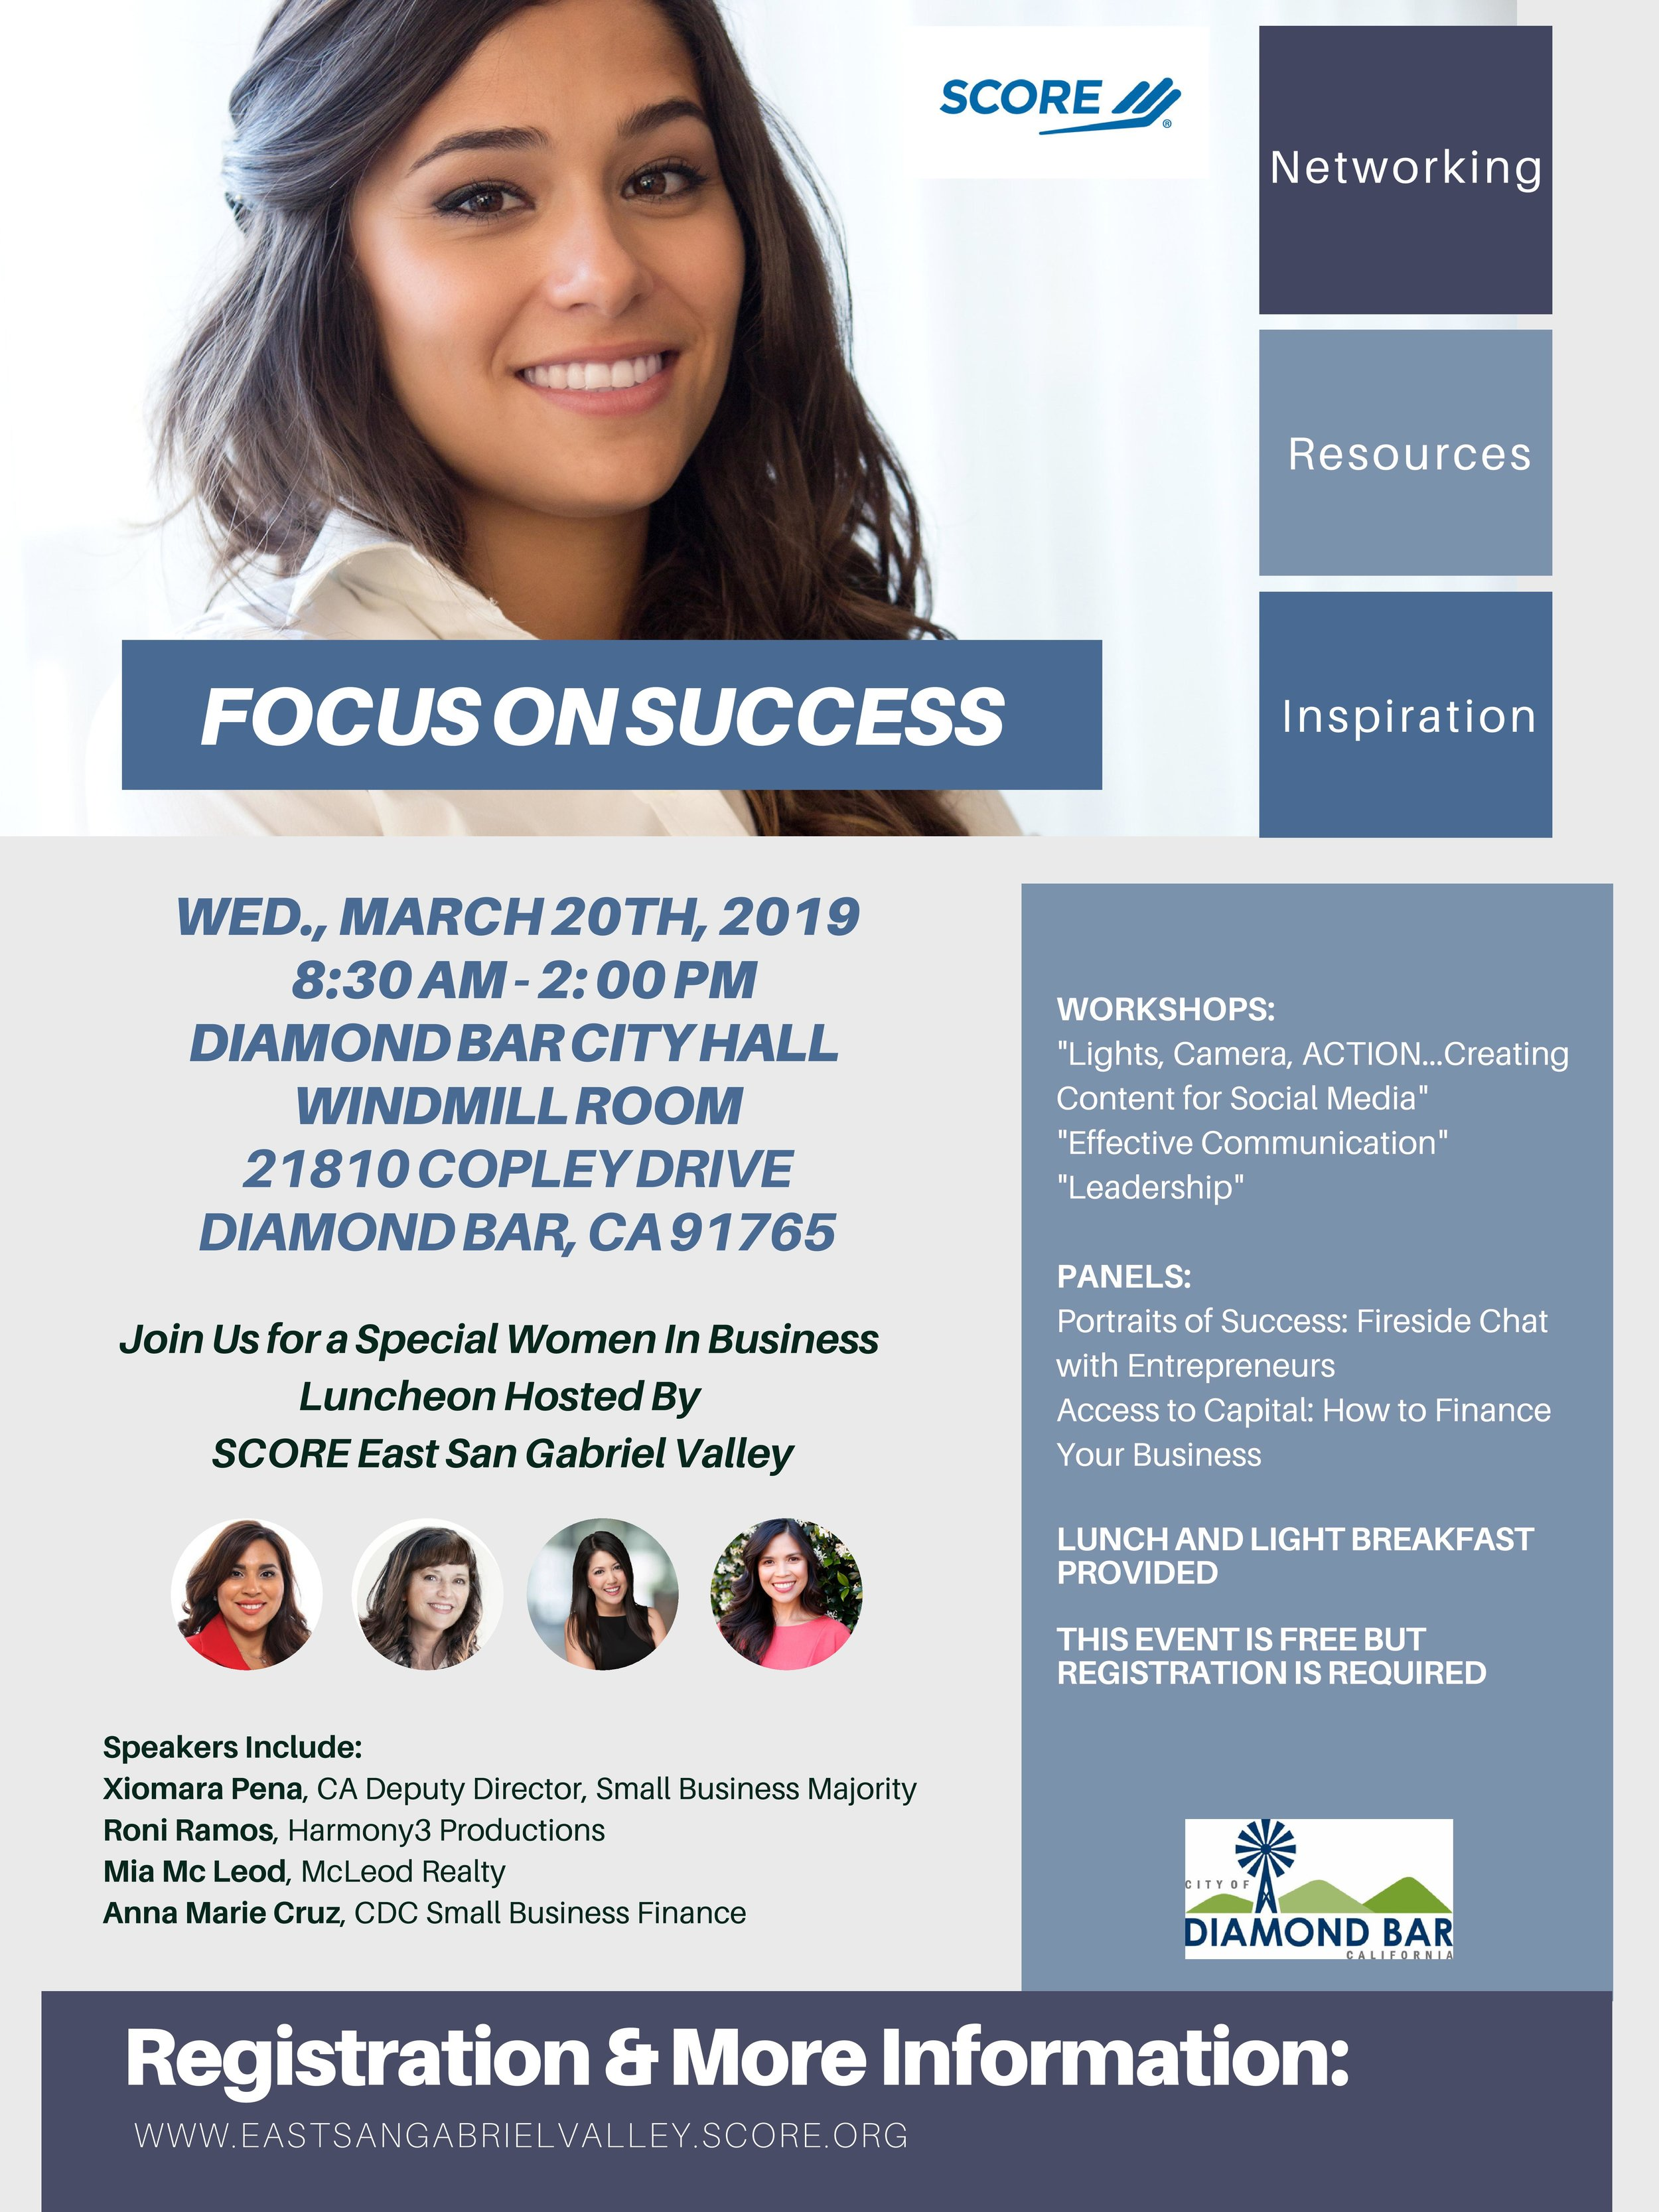 women in business - focus on success - March 20th, 2019